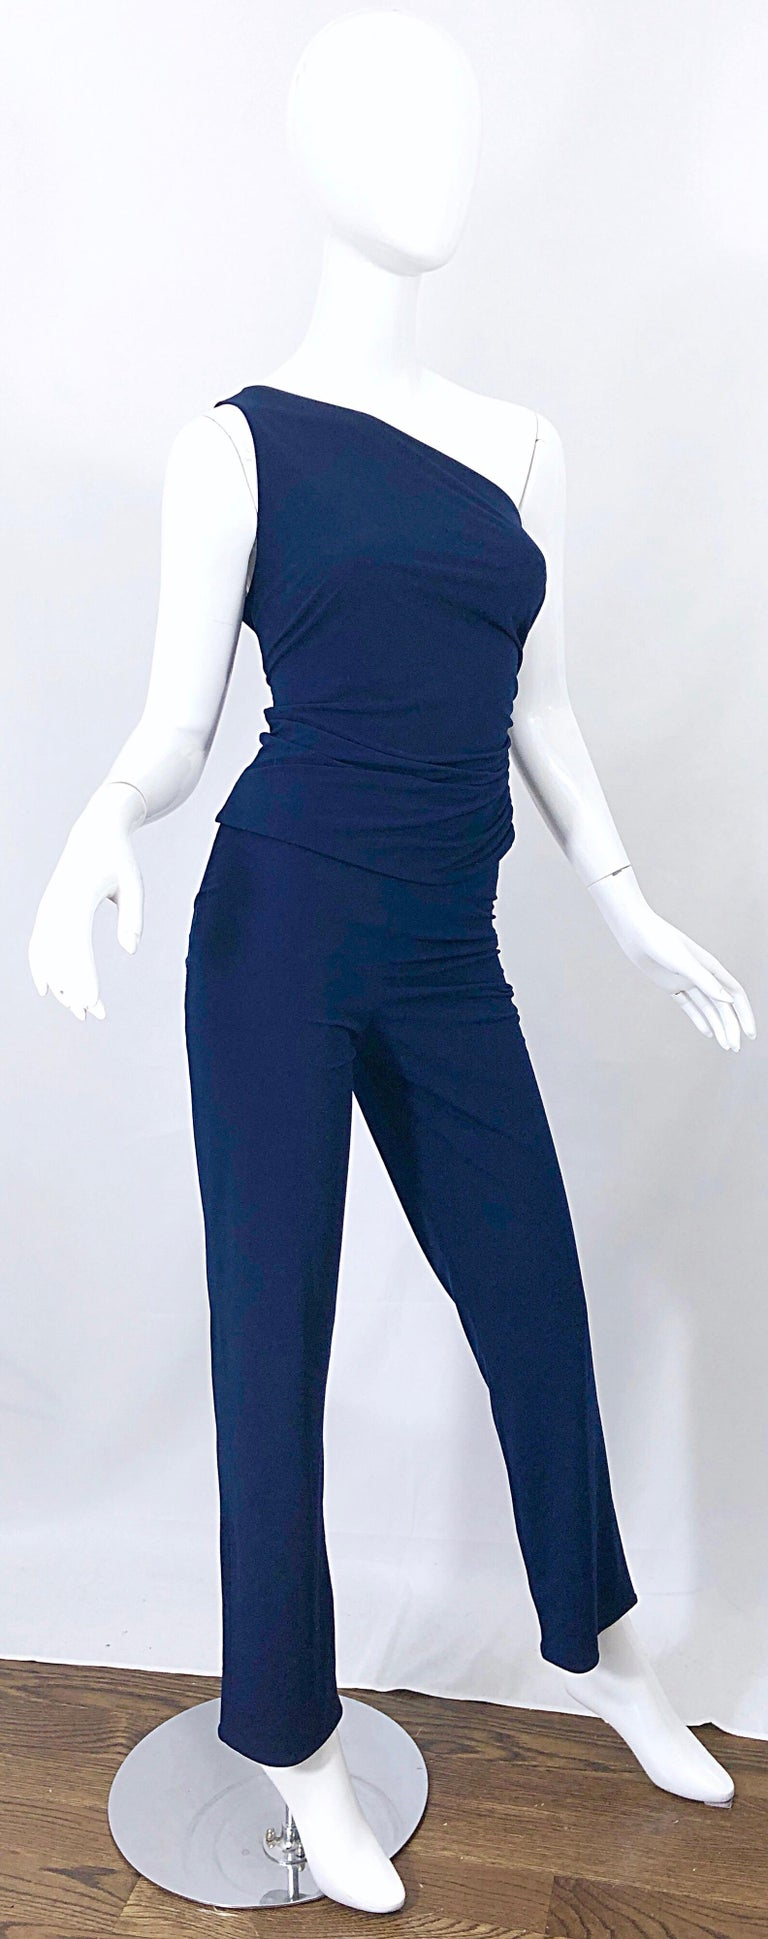 Vintage Norma Kamali OMO 1980s Navy Blue One Shoulder 80s Top and Pants Jumpsuit For Sale 6